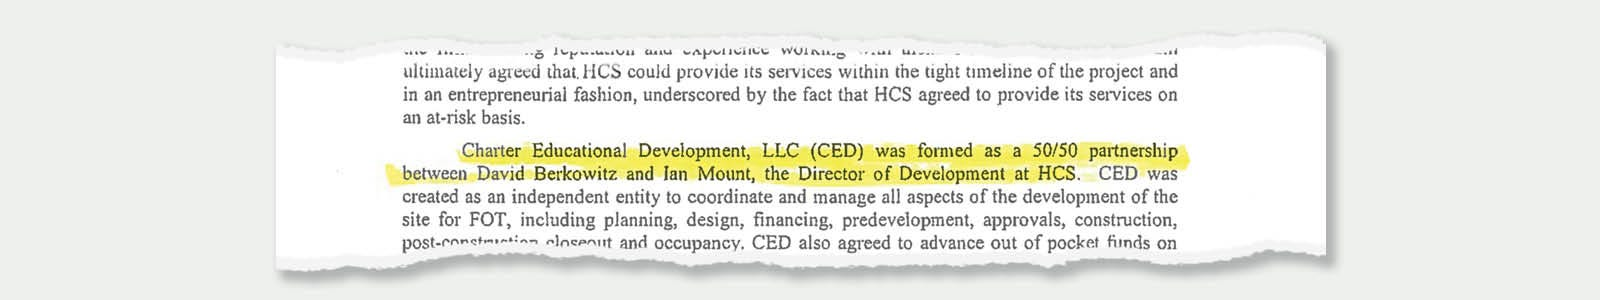 Ian Mount and David Berkowitz  formed a company called Charter Educational Development.